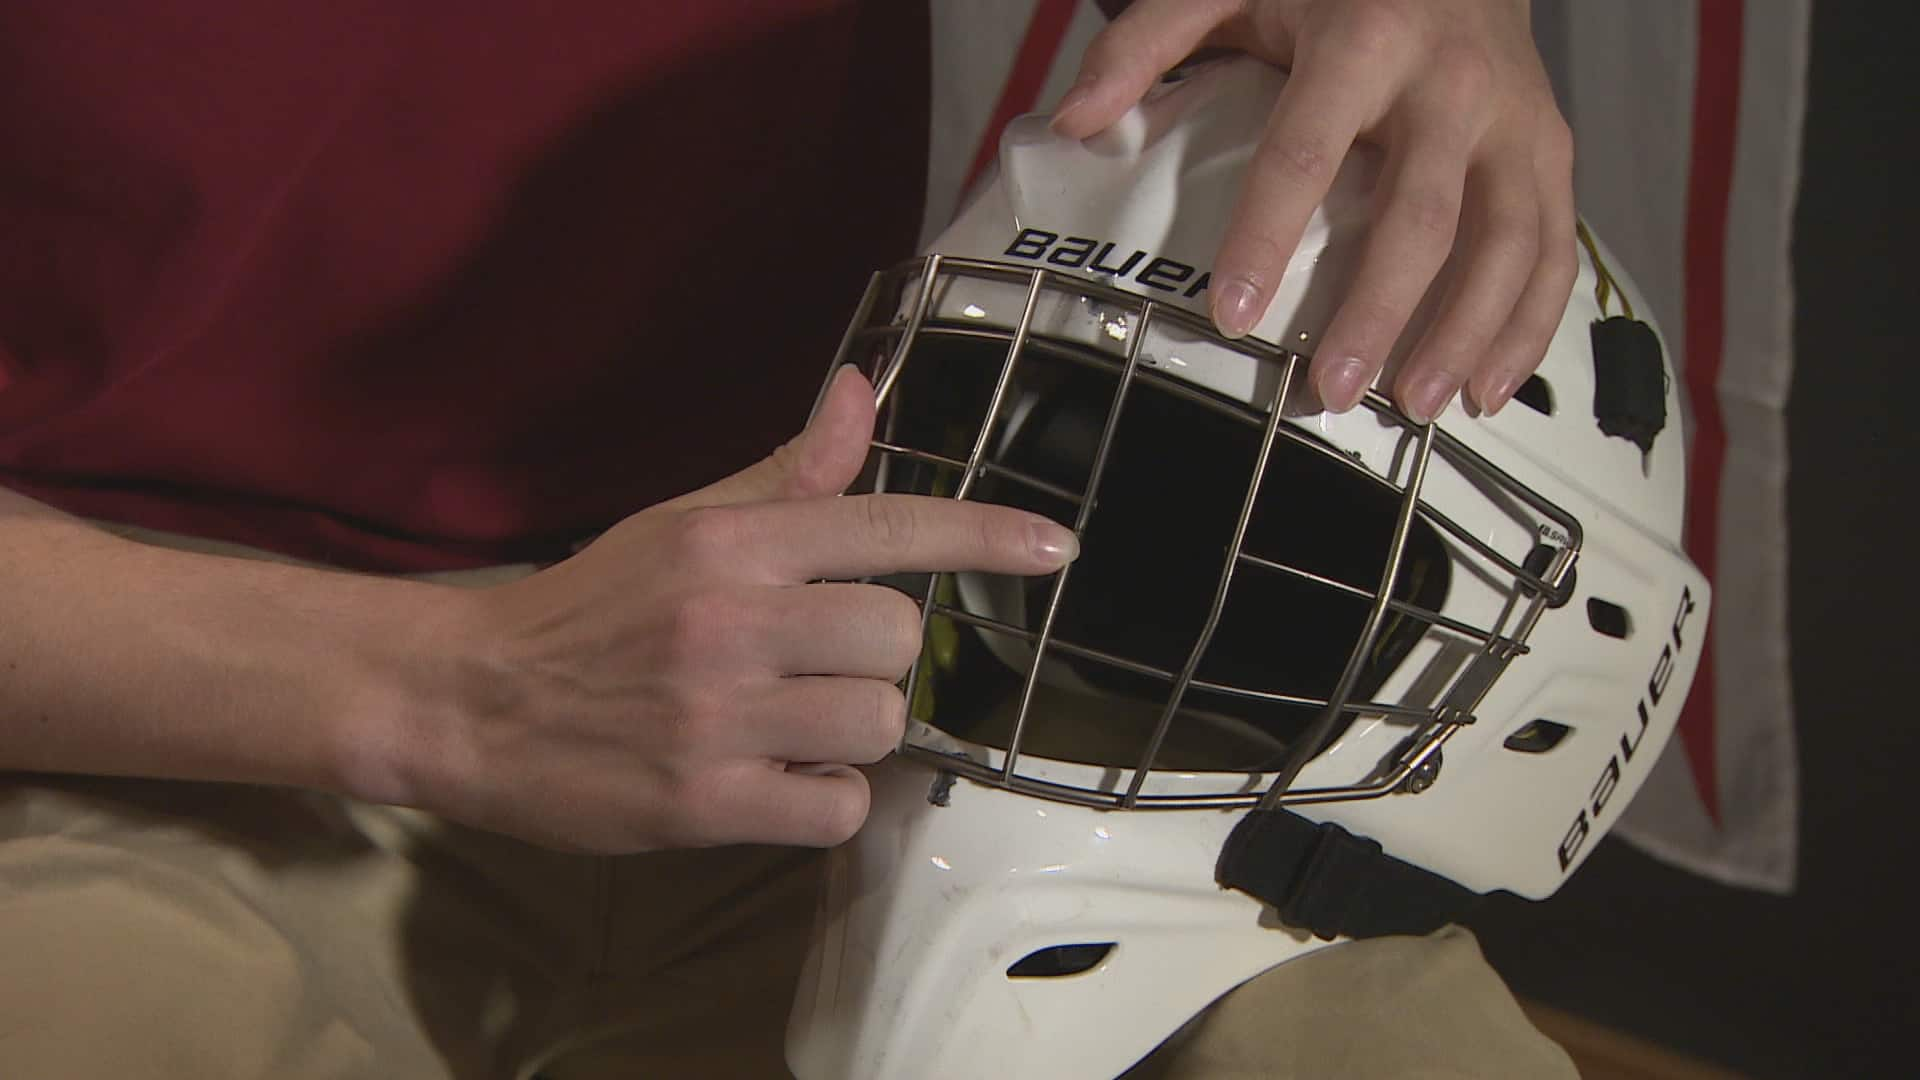 The National - Helmet failure threatens young goalie's sight